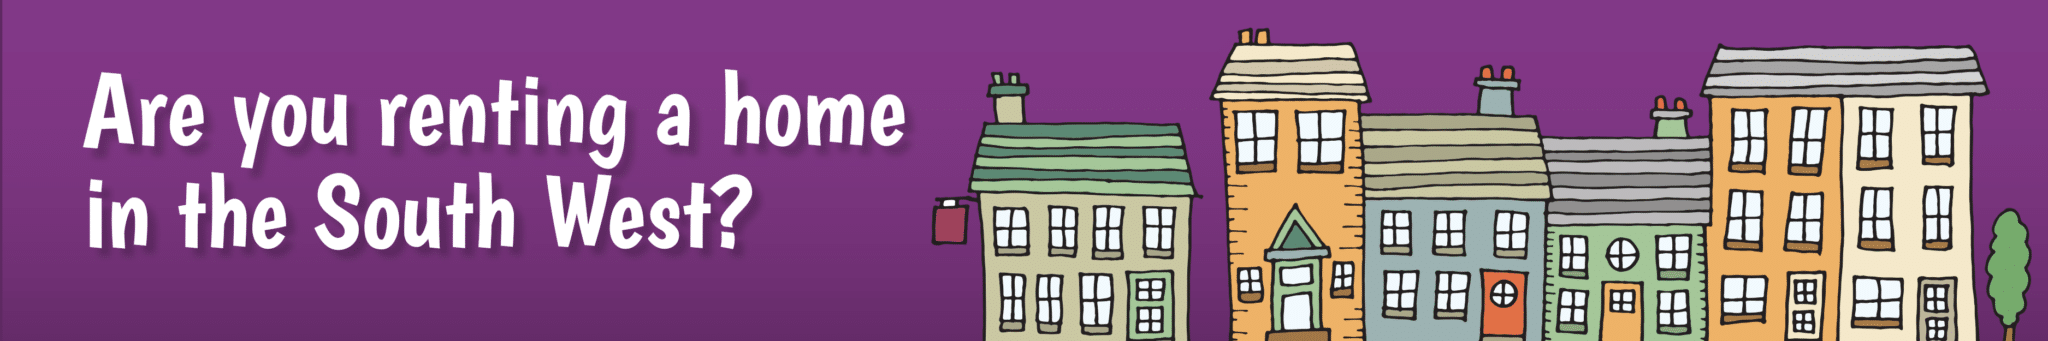 Are you renting a home in the South West?